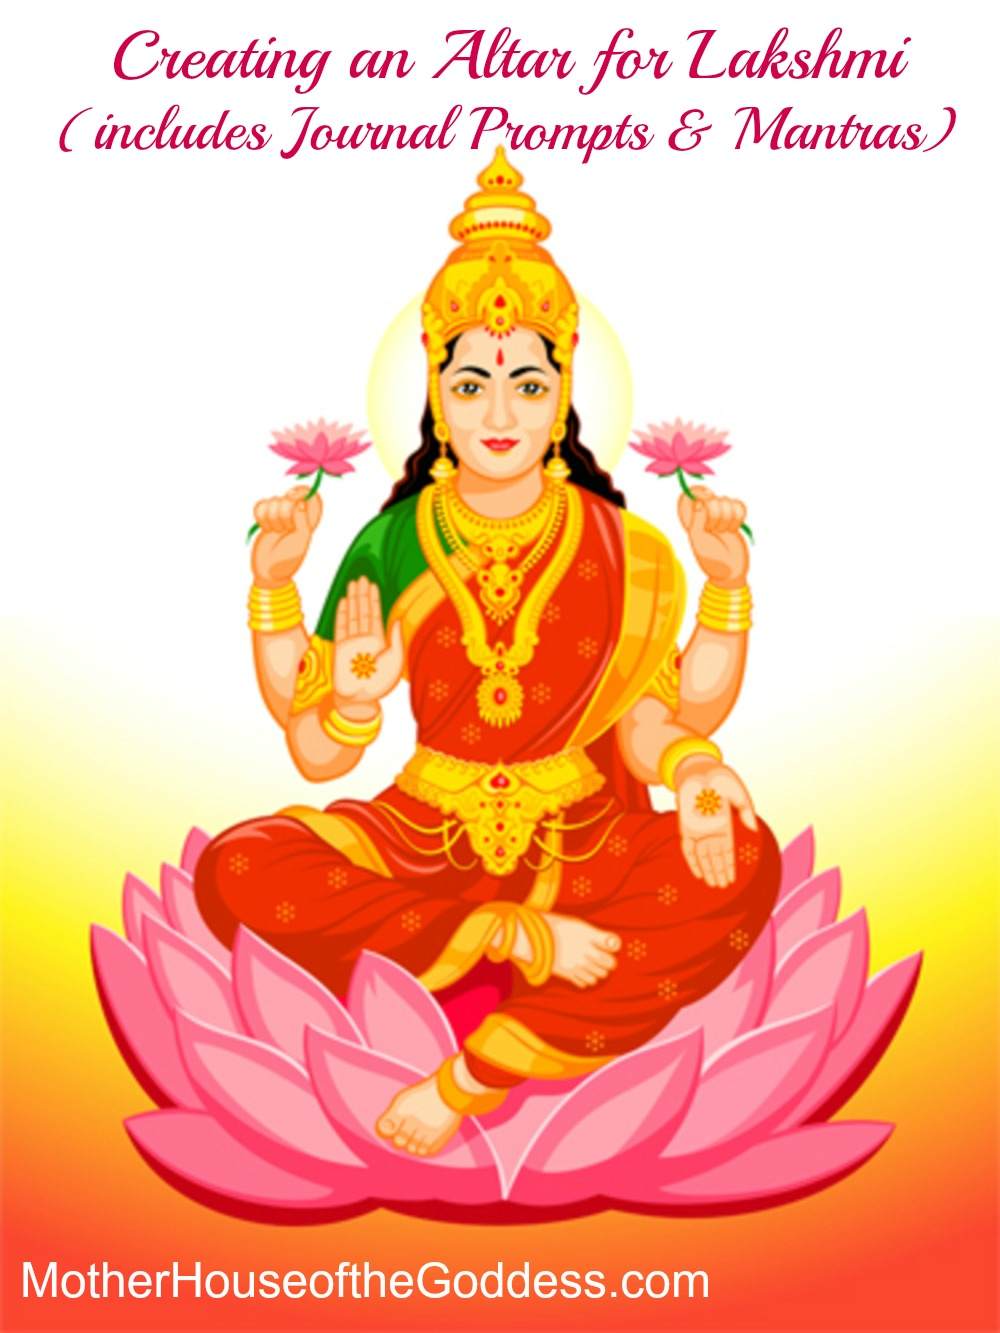 Creating an Altar for the Hindu Goddess Lakshmi with Journal Prompts and Mantras by Kimberly F Moore for MotherHouse of the Goddess